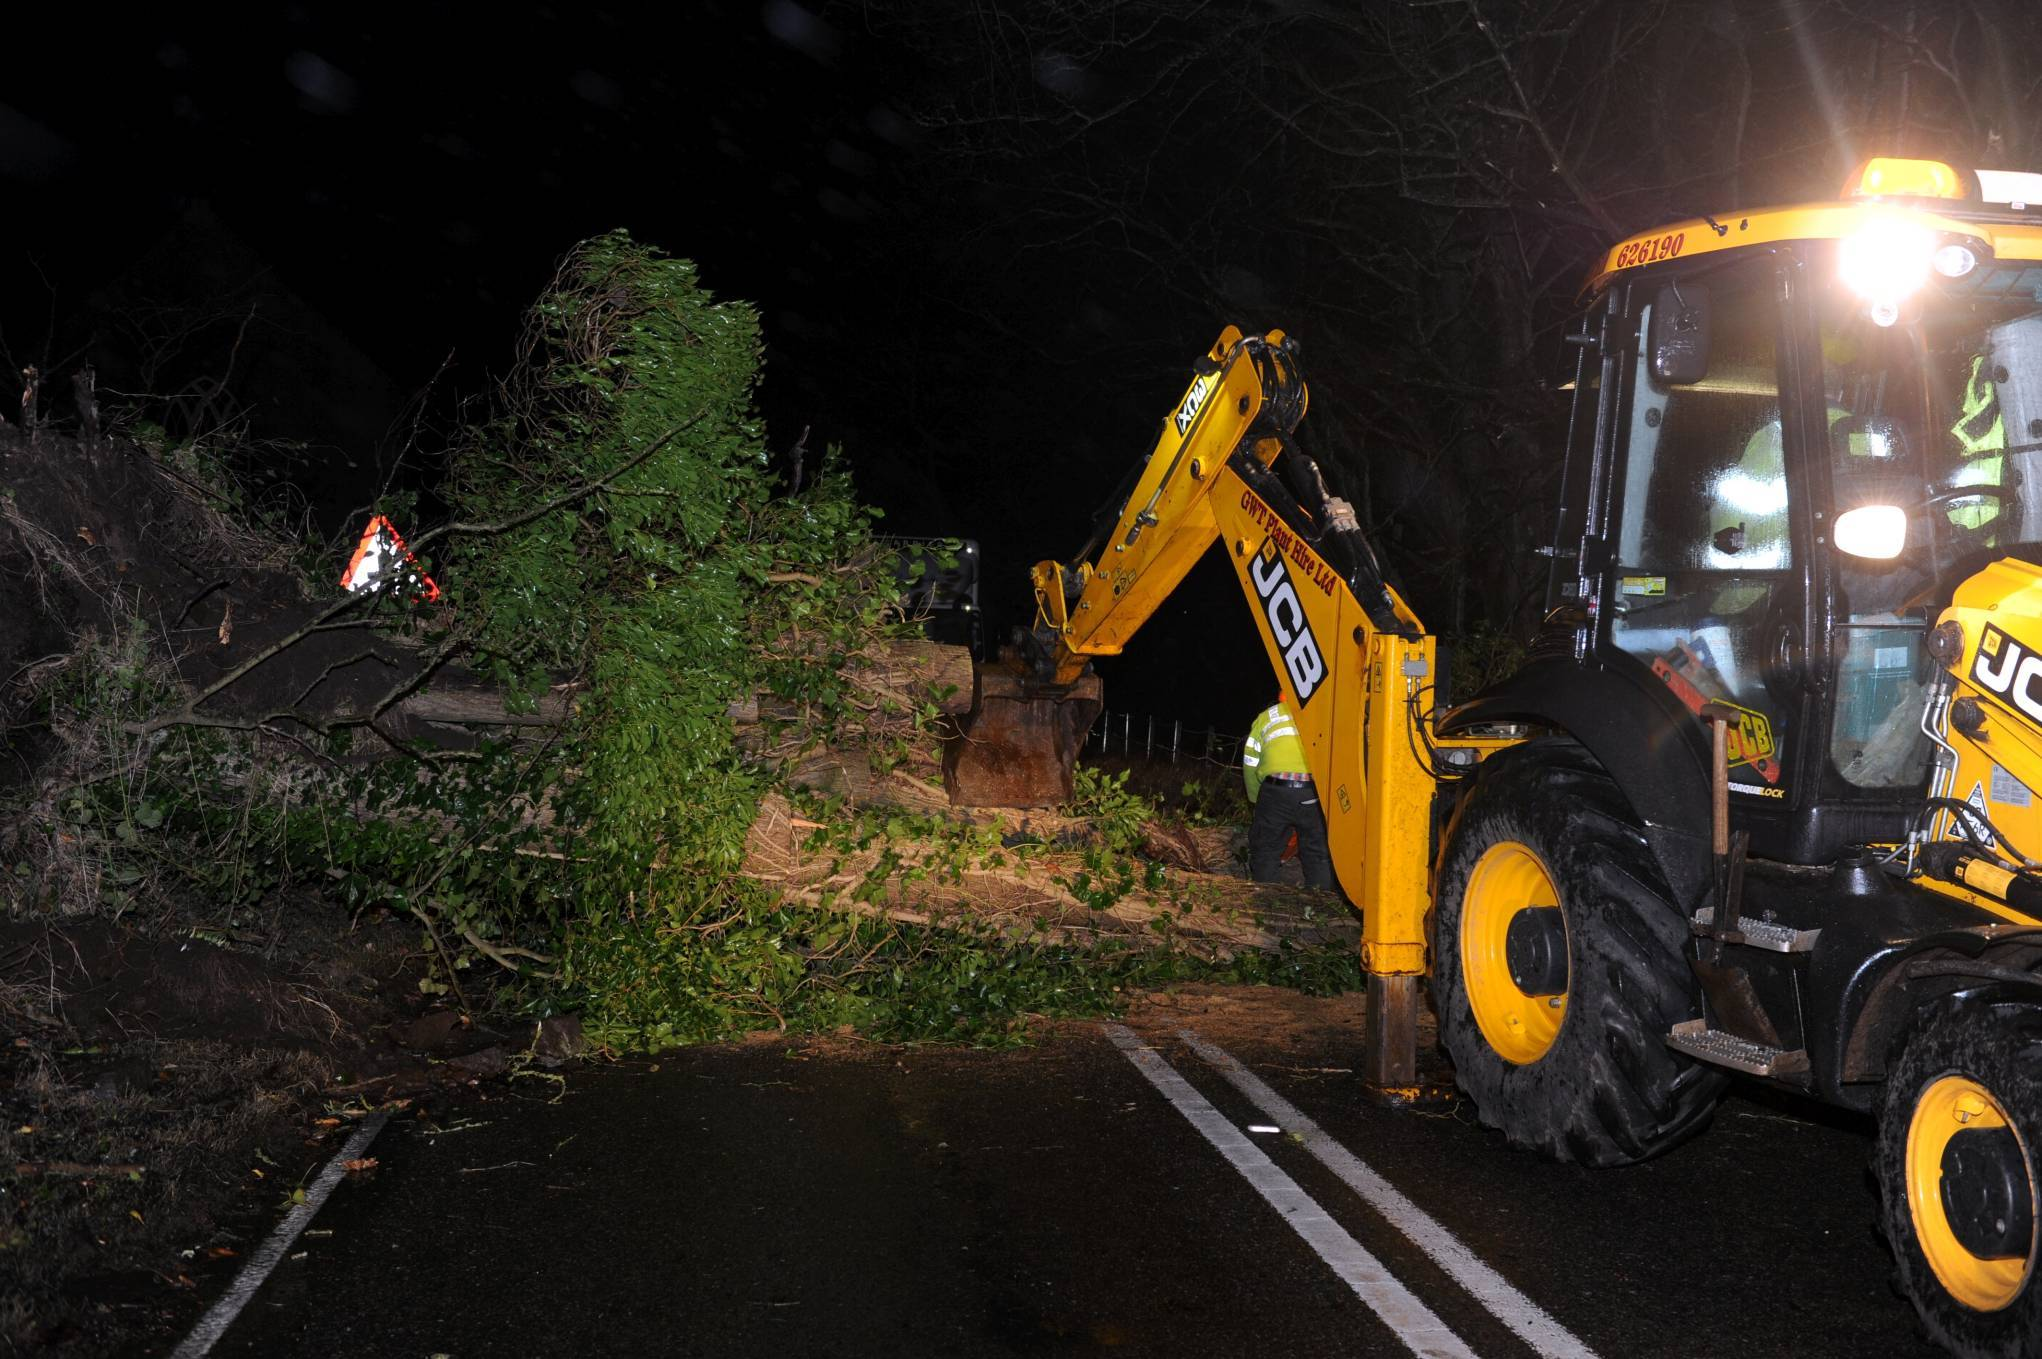 Police have received reports of a number of fallen trees including on South Deeside Road